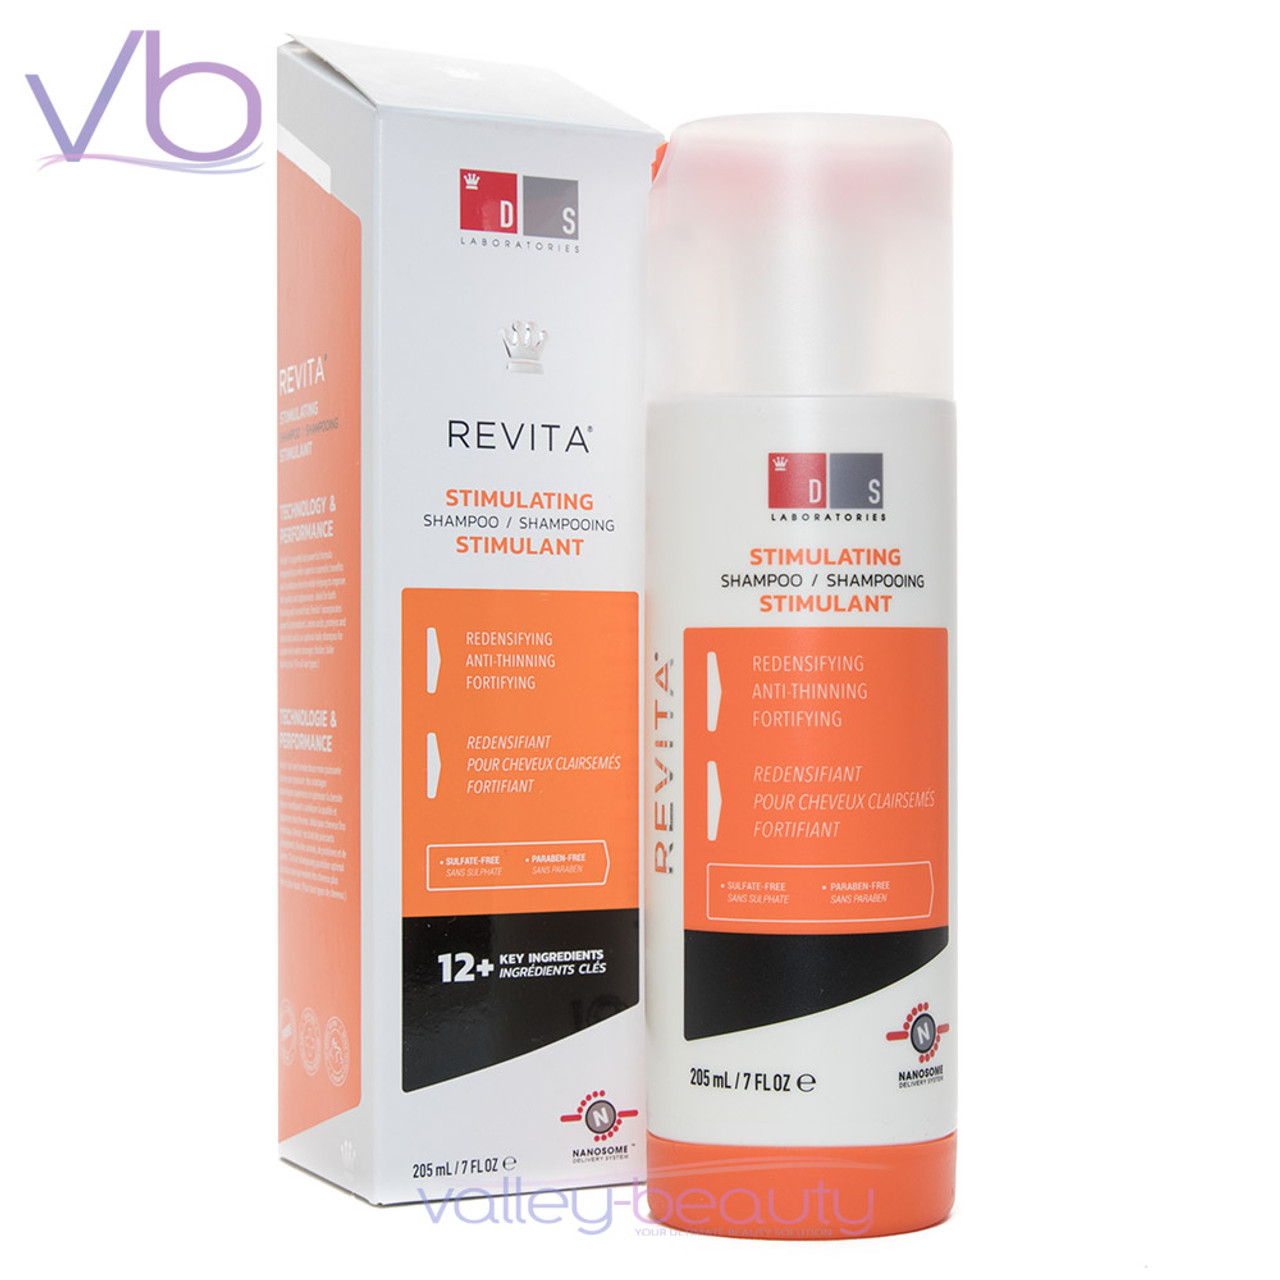 revita ds laboratories review